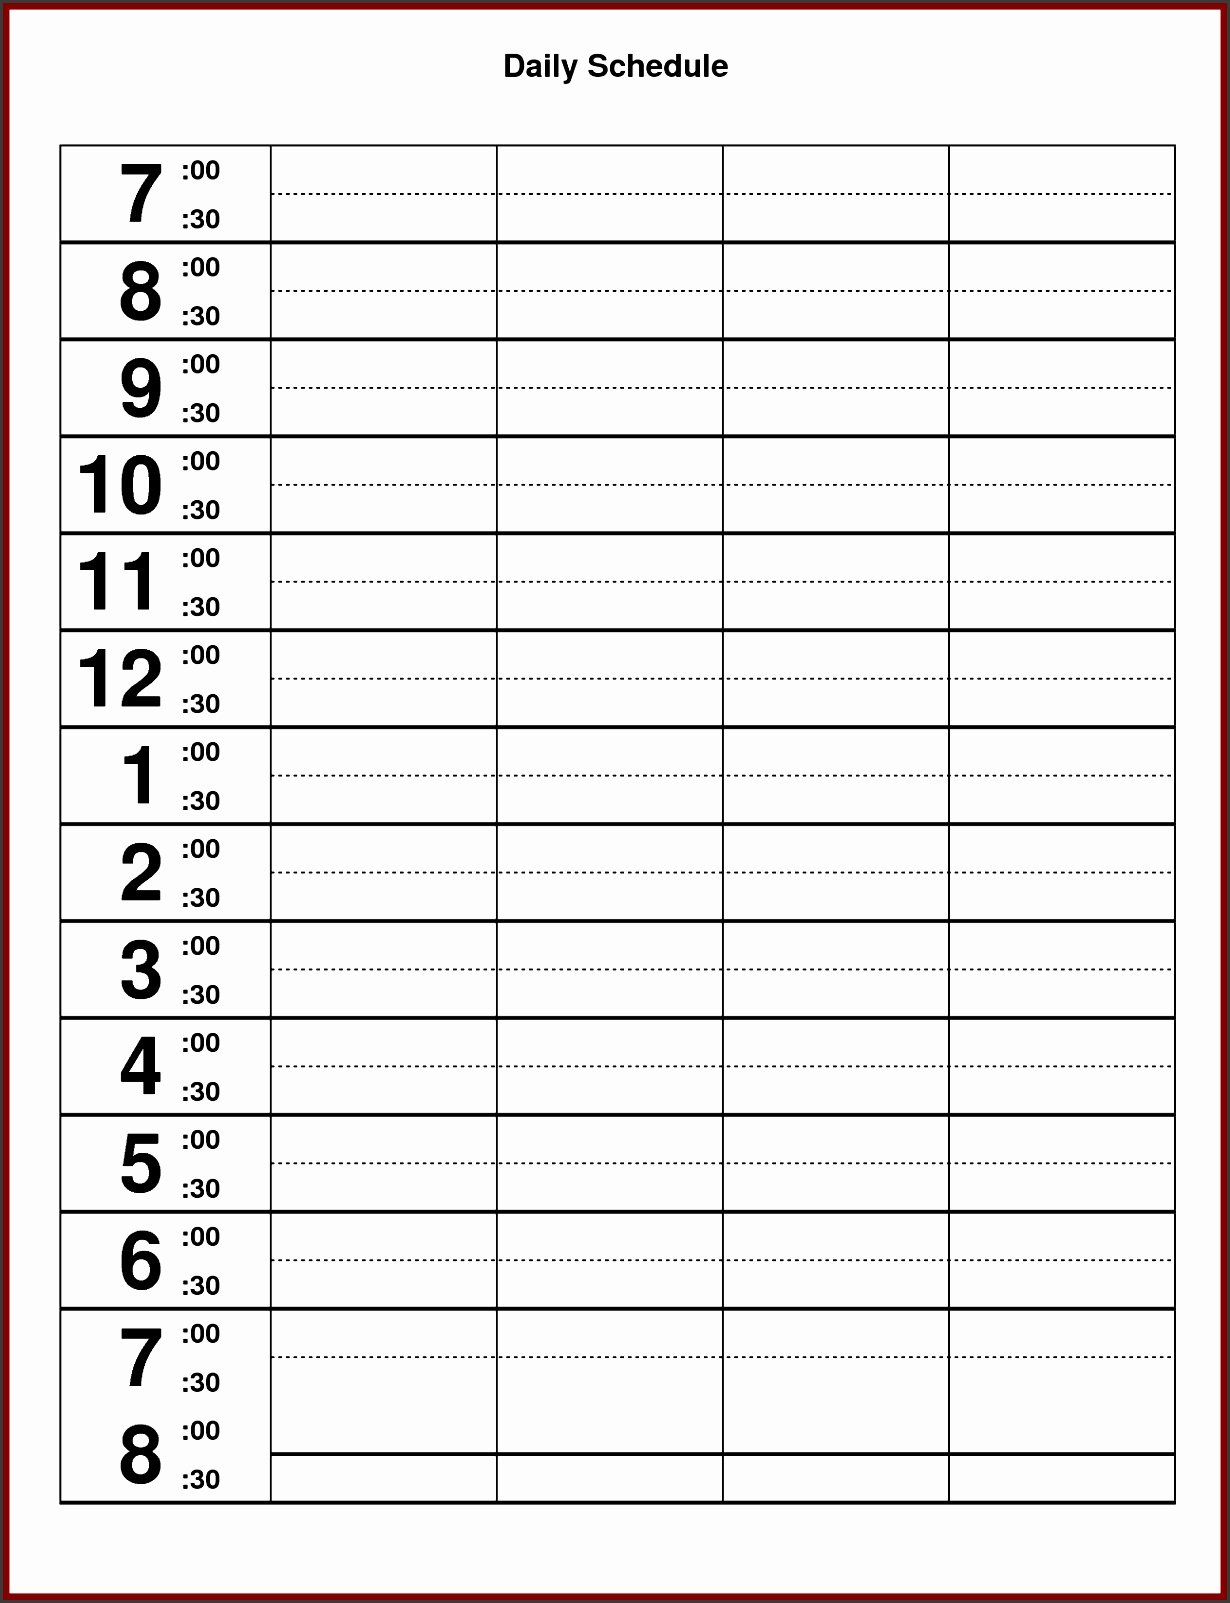 Conference Room Scheduling Template Fresh 9 Conference Room Schedule Template Sampletemplatess